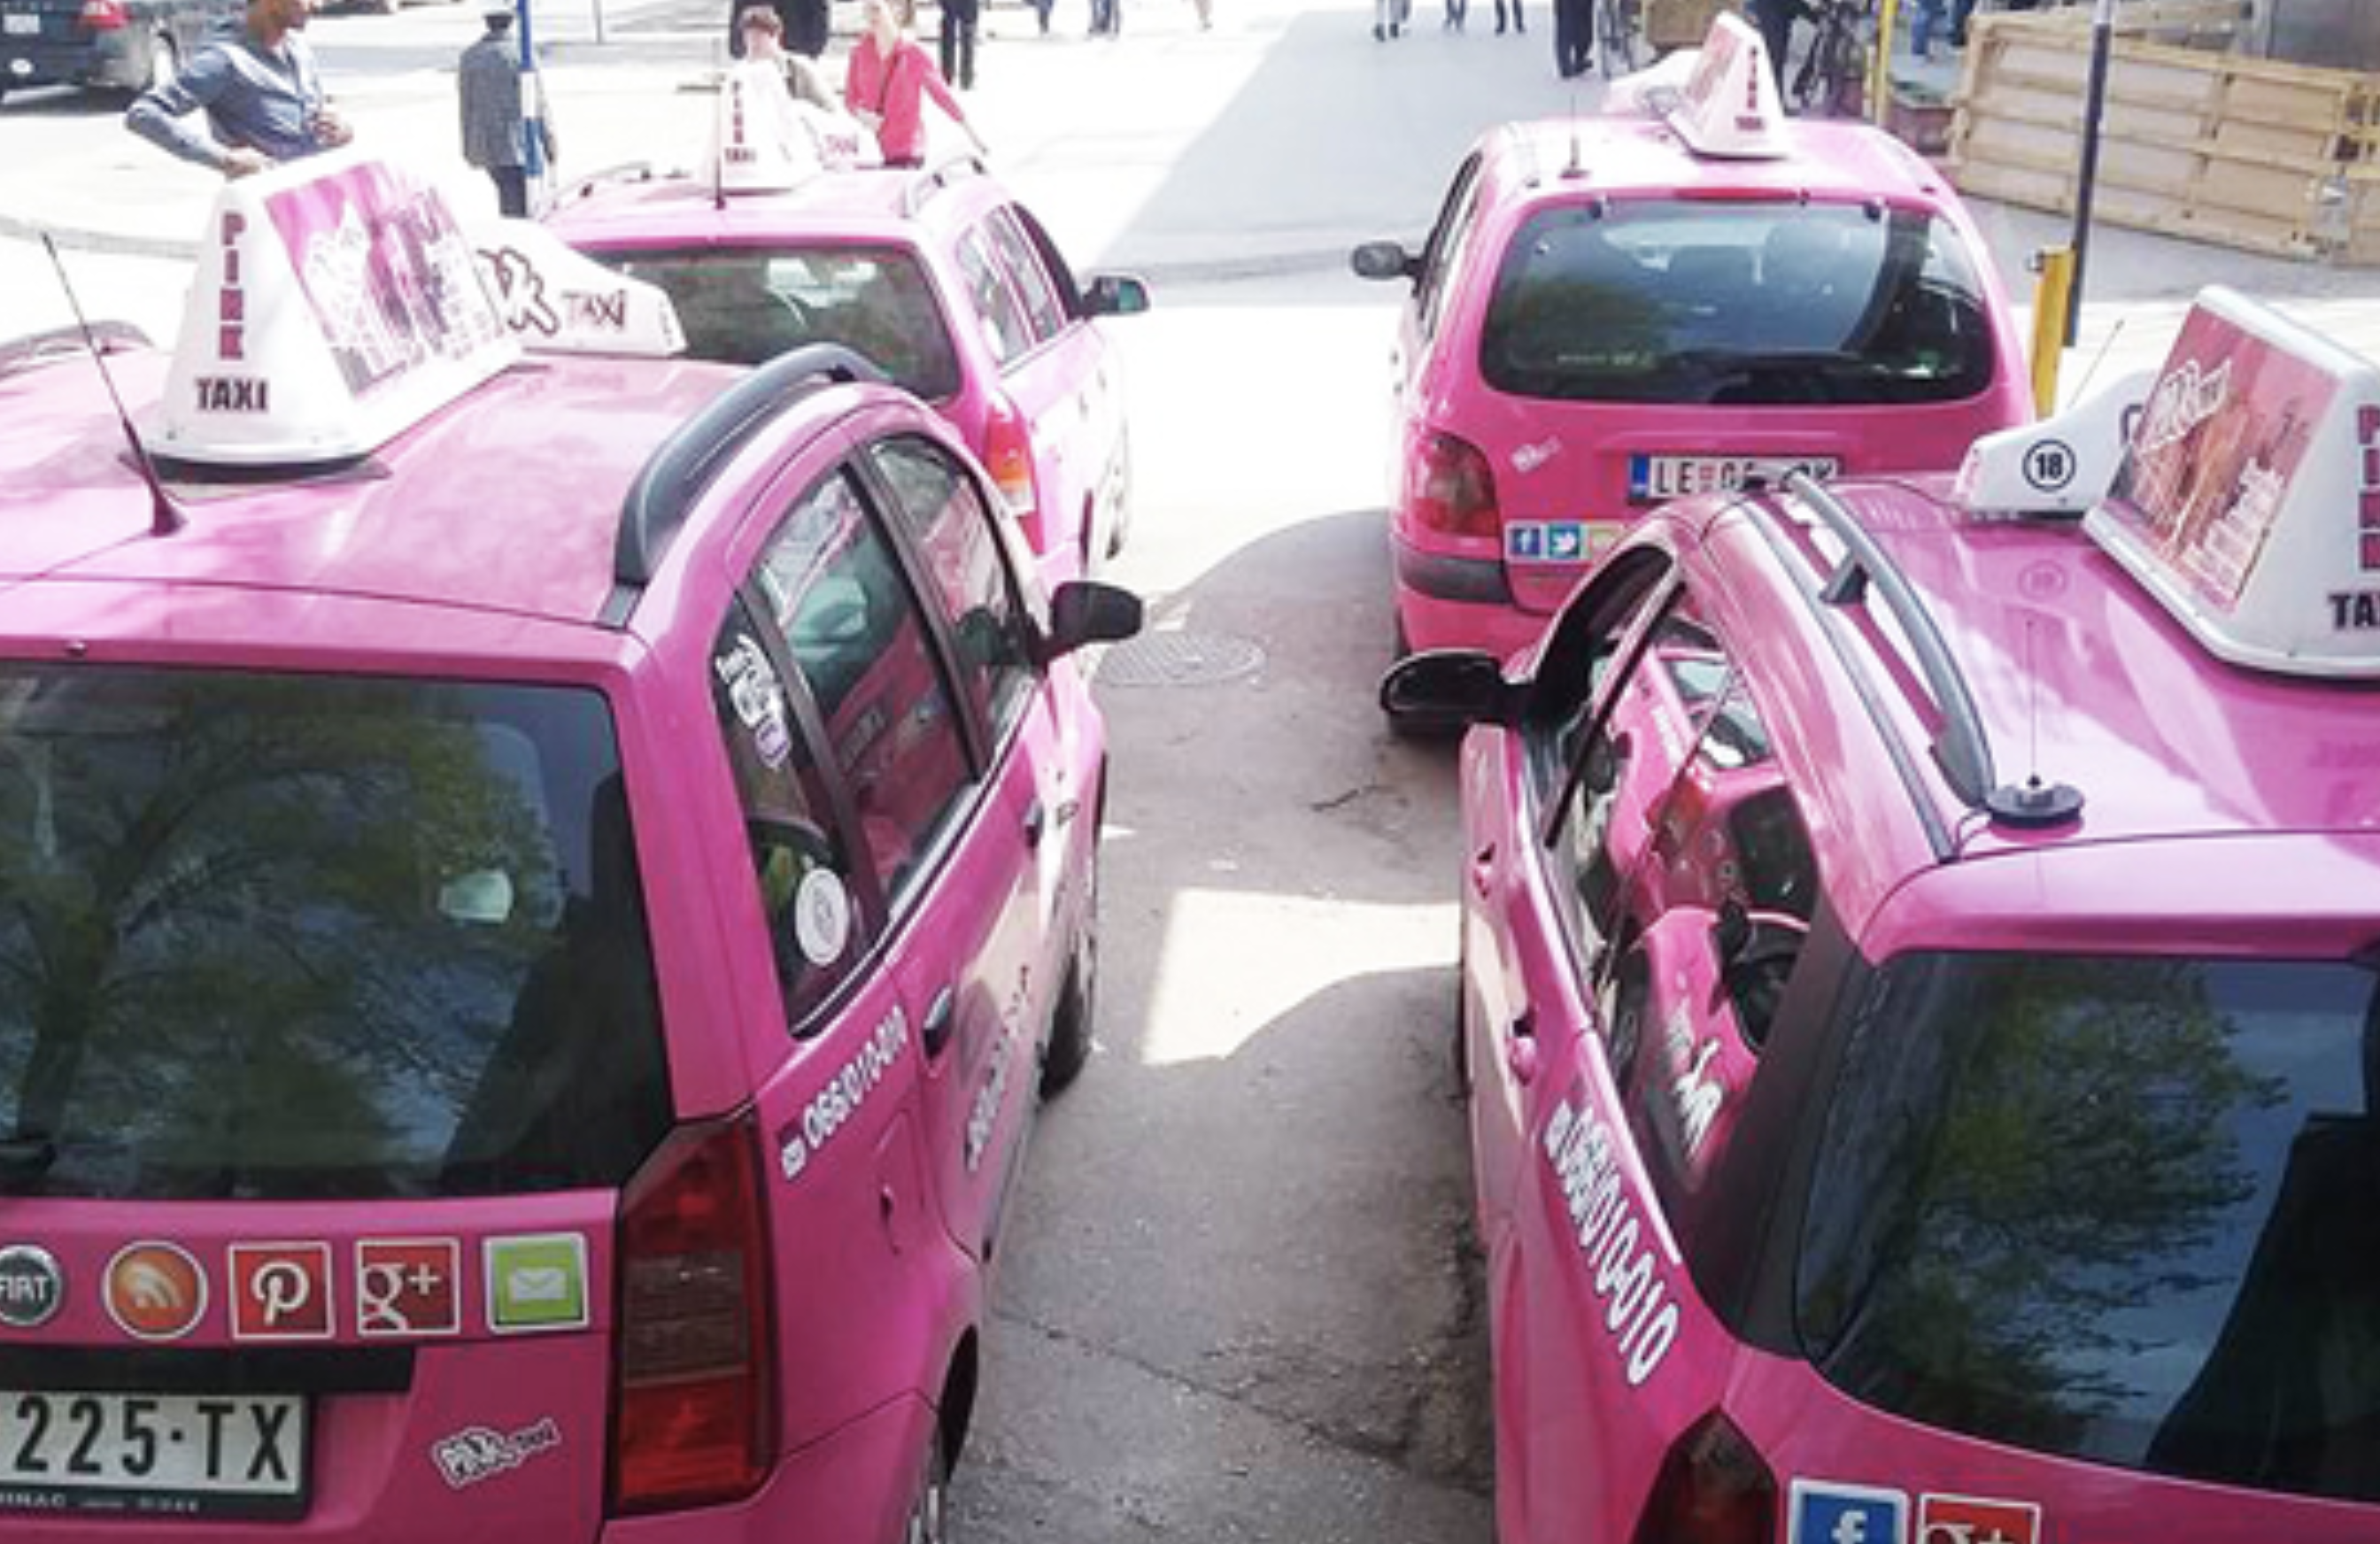 Pink Taxis, Red Flags: A Deep Dive Into a Sketchy ICO - CoinDesk